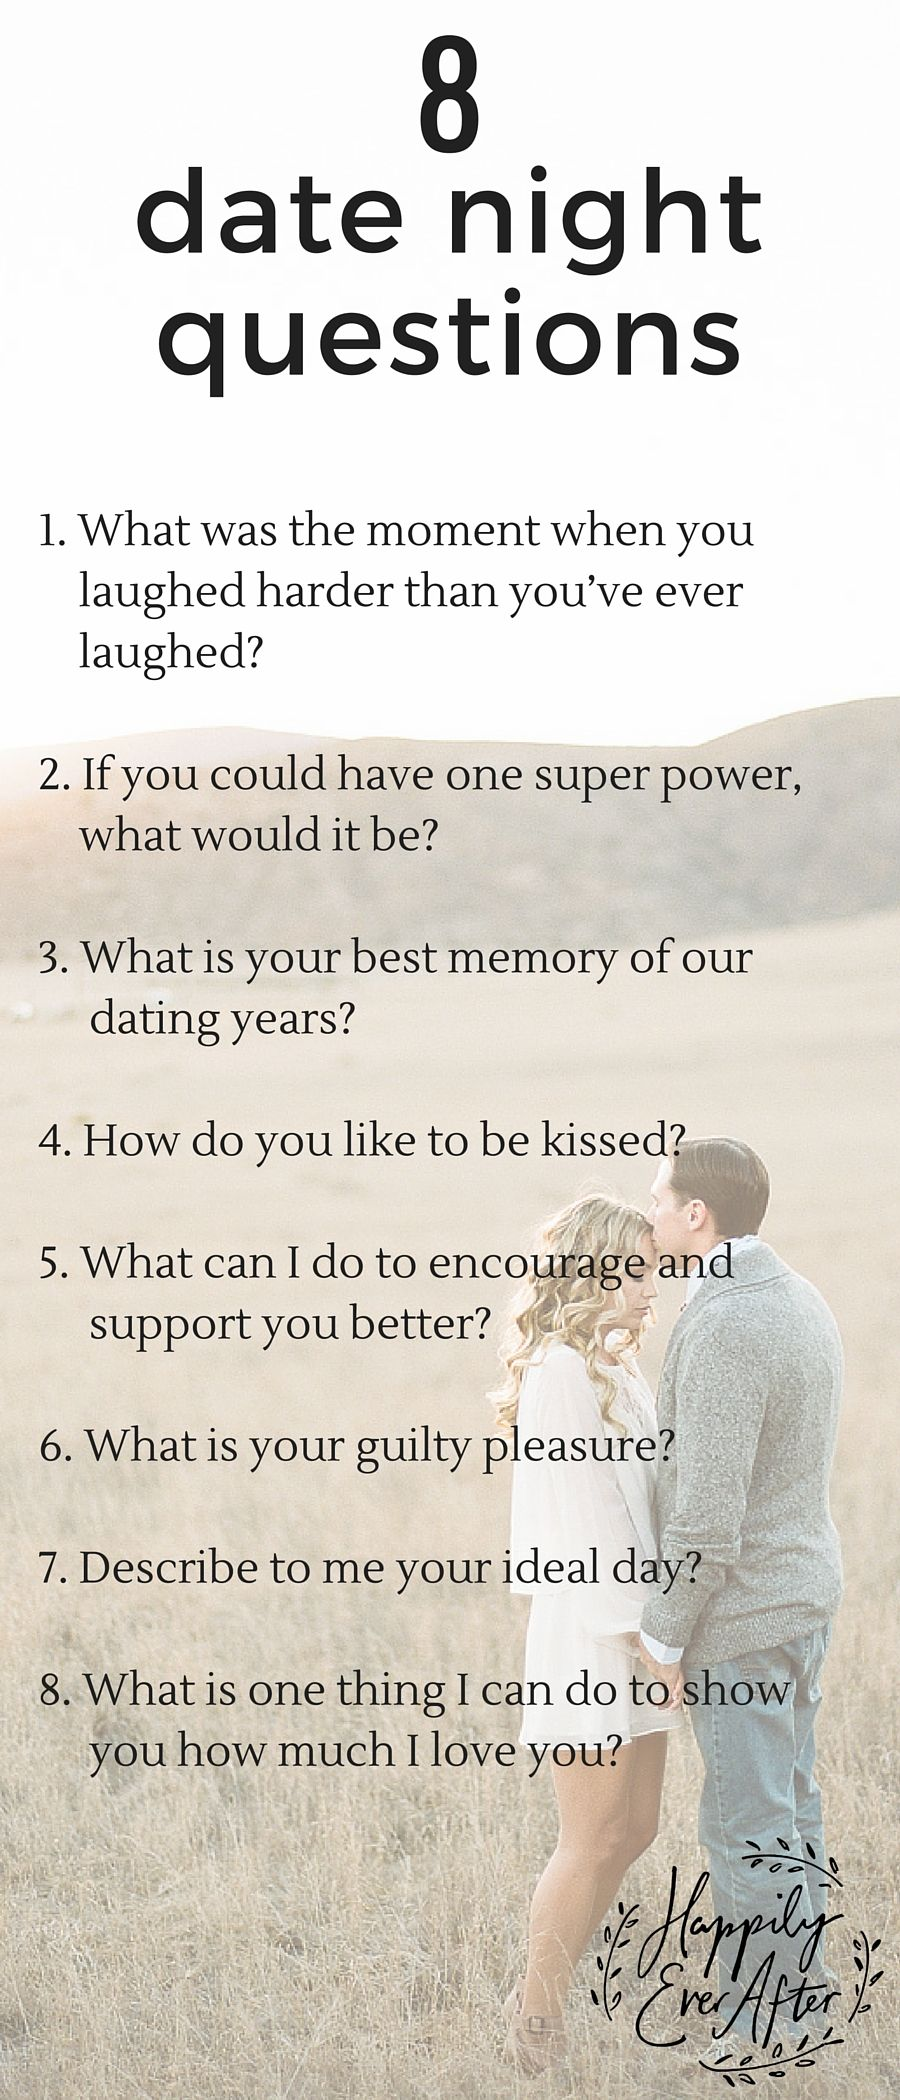 Good questions to ask on a date